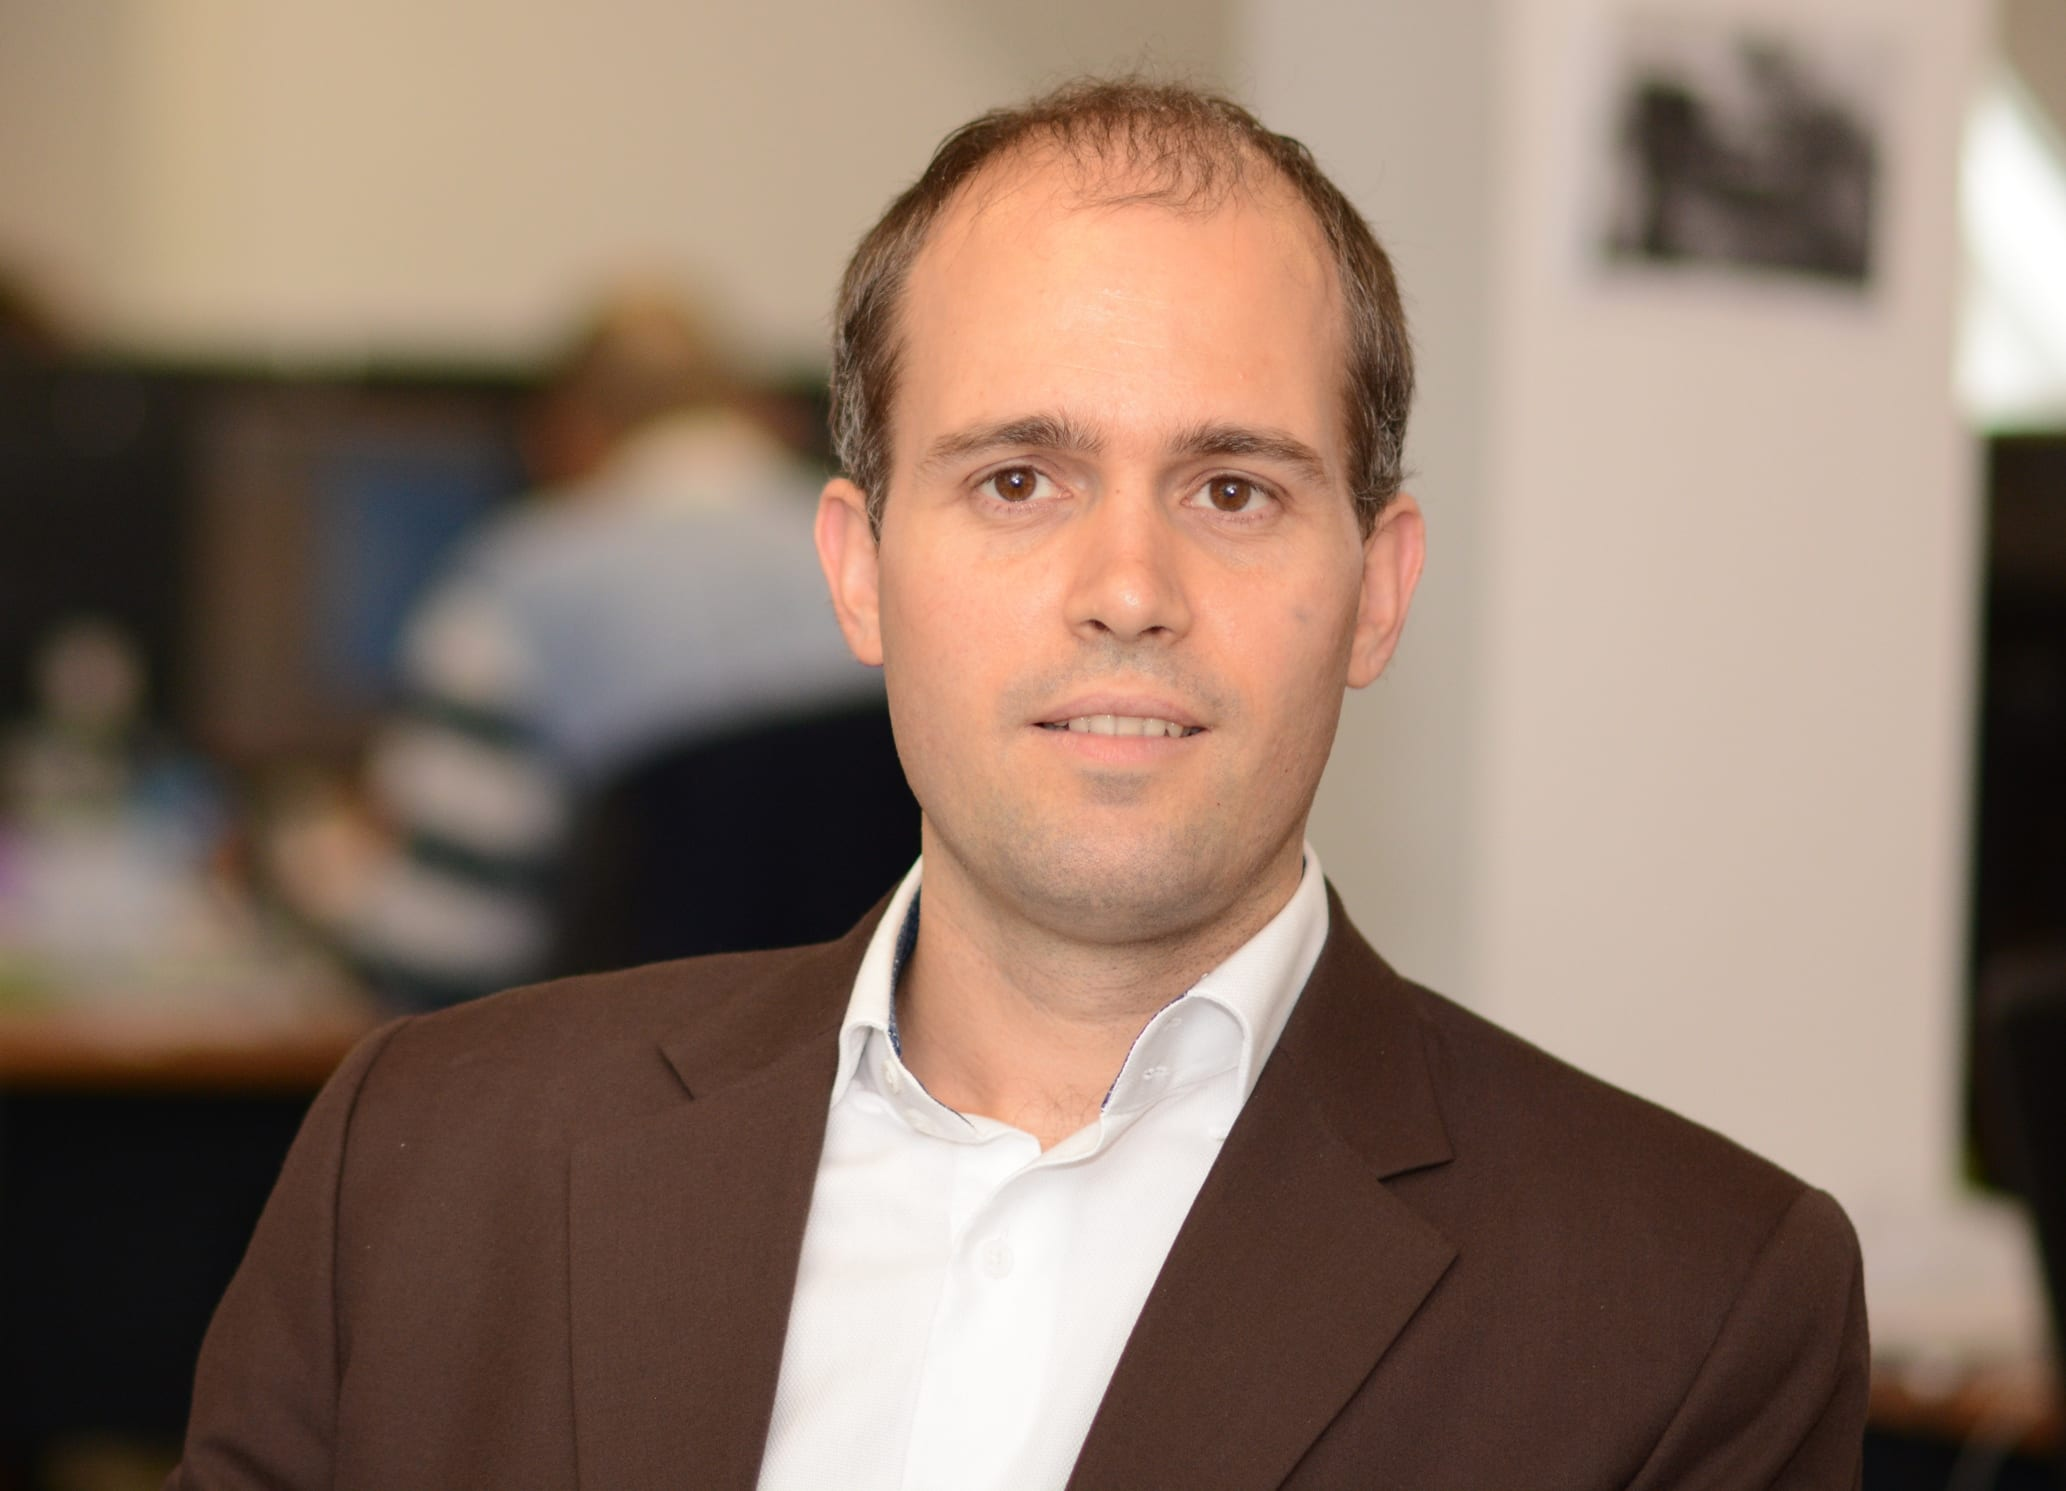 Sylvain Thieullent, CEO of Horizon Software